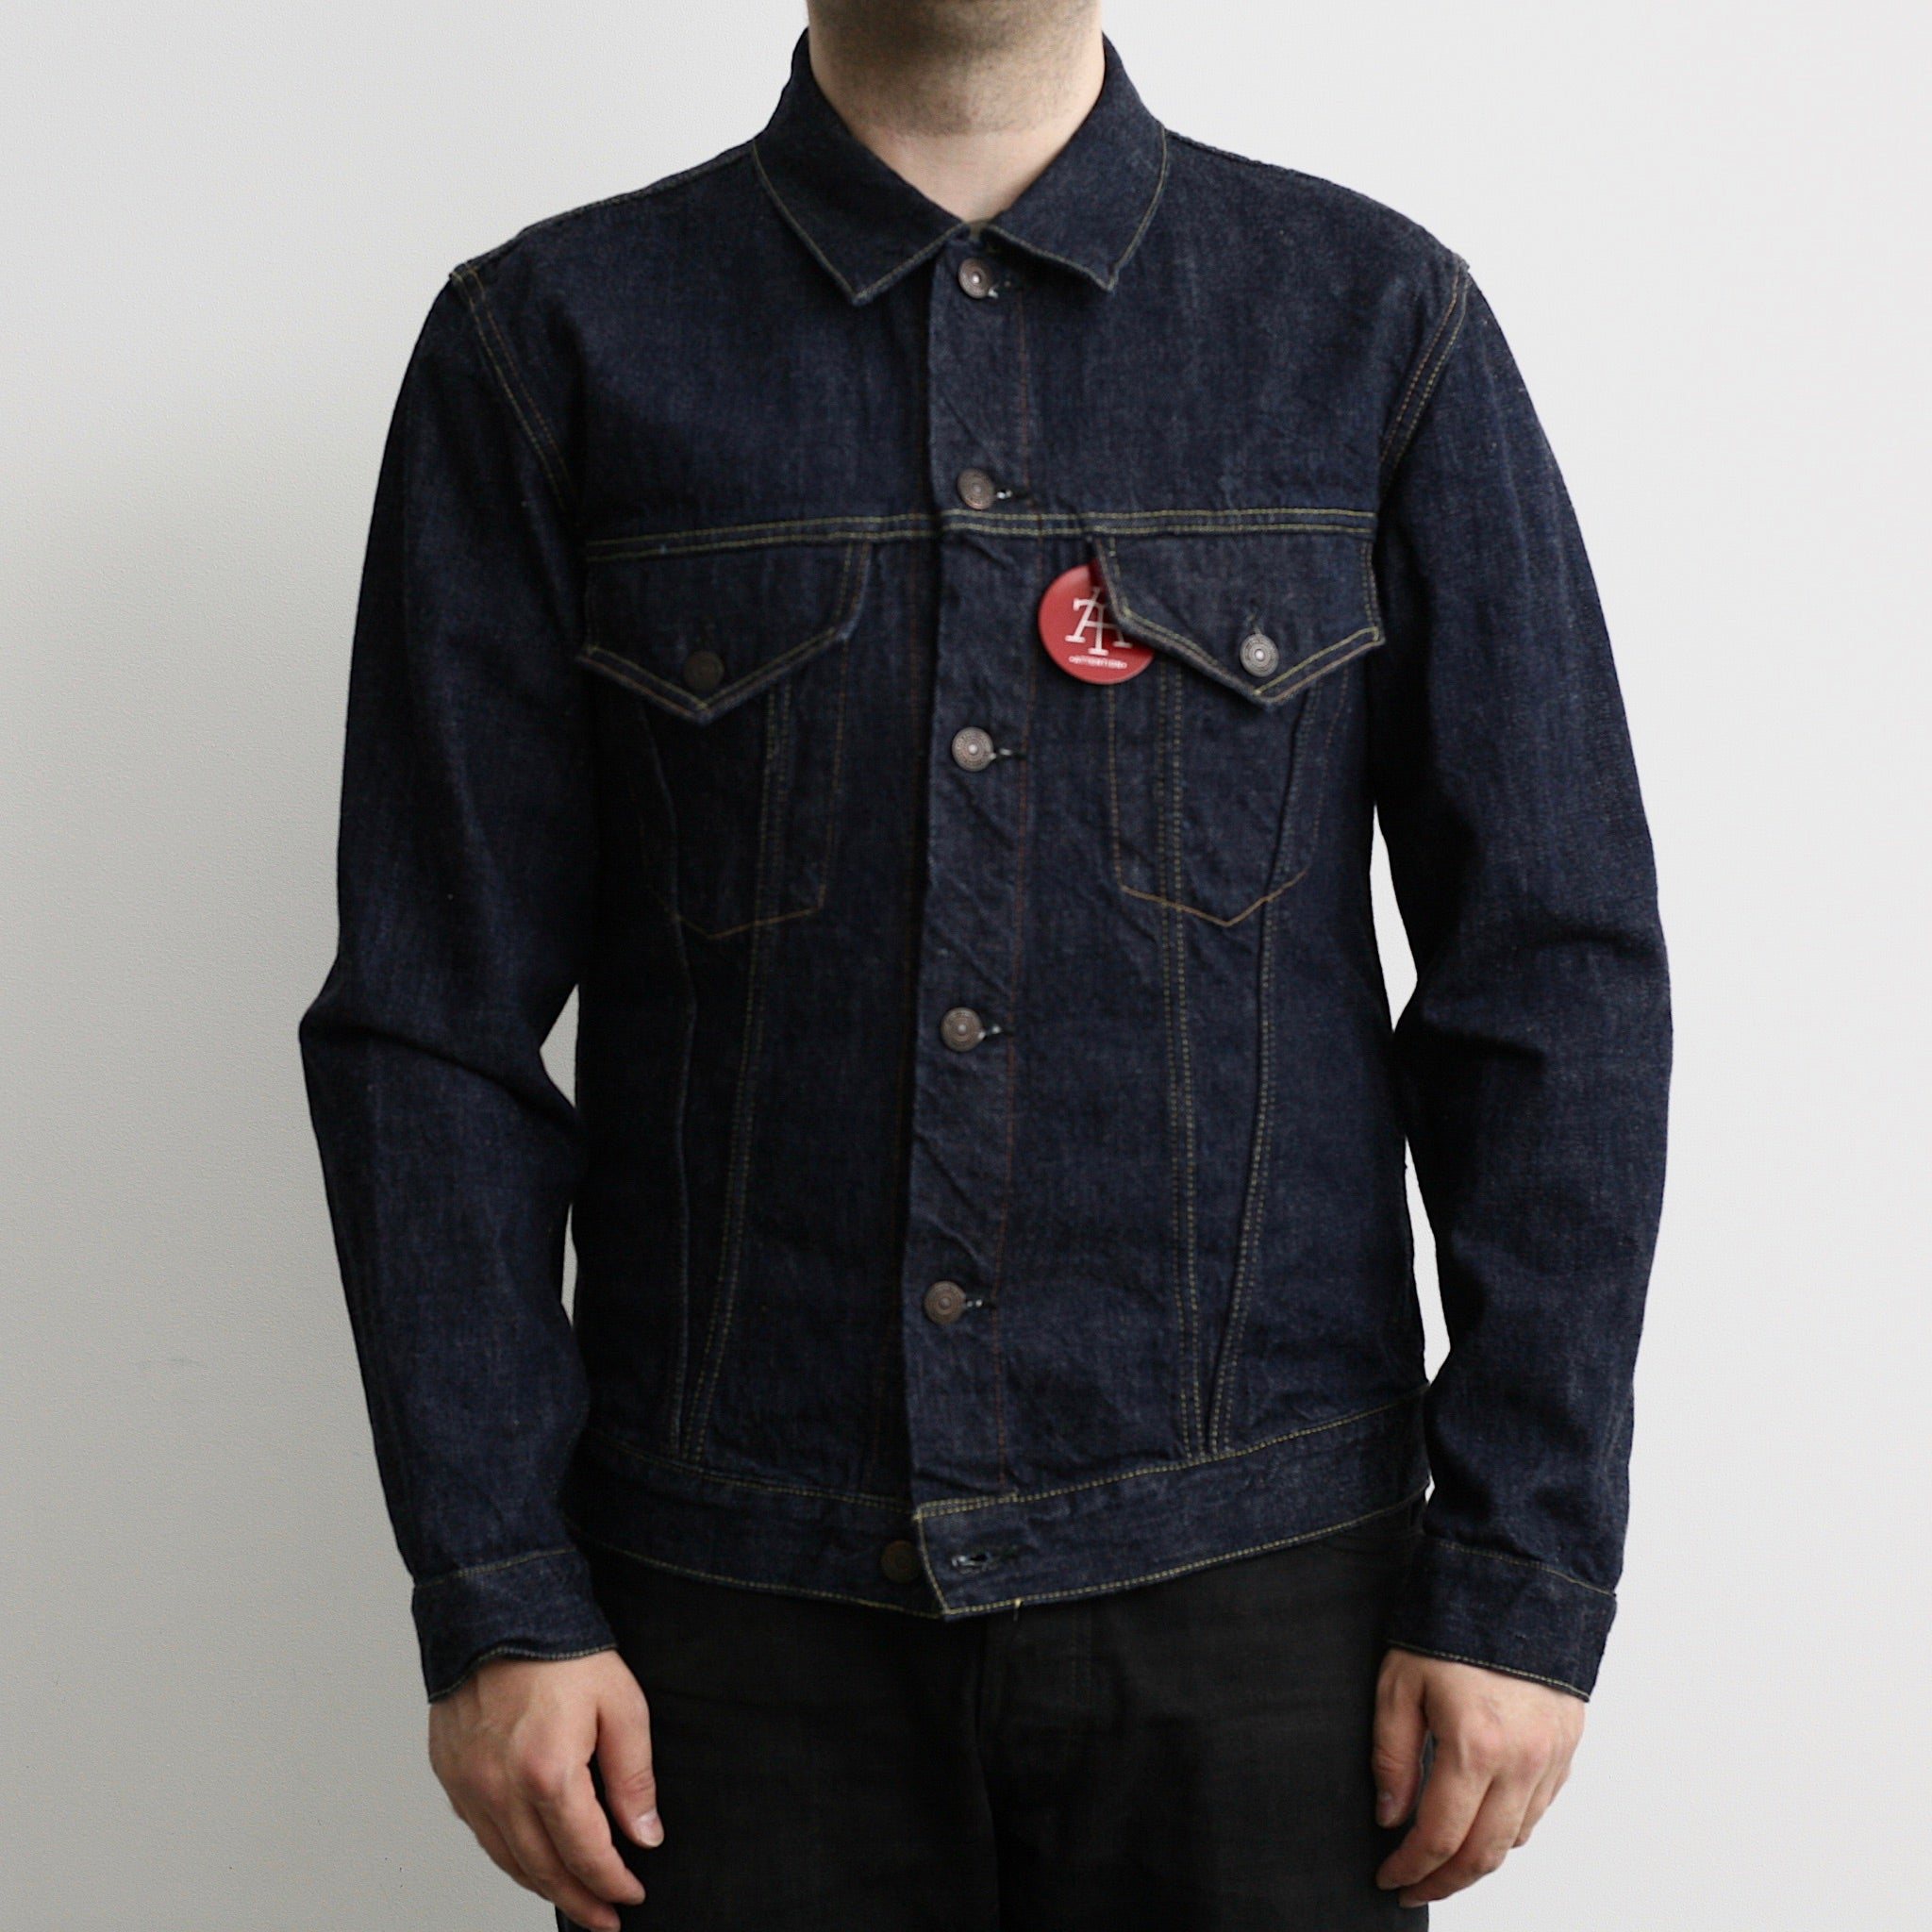 2101 - Type III Selvedge Denim Jacket - 13.7oz